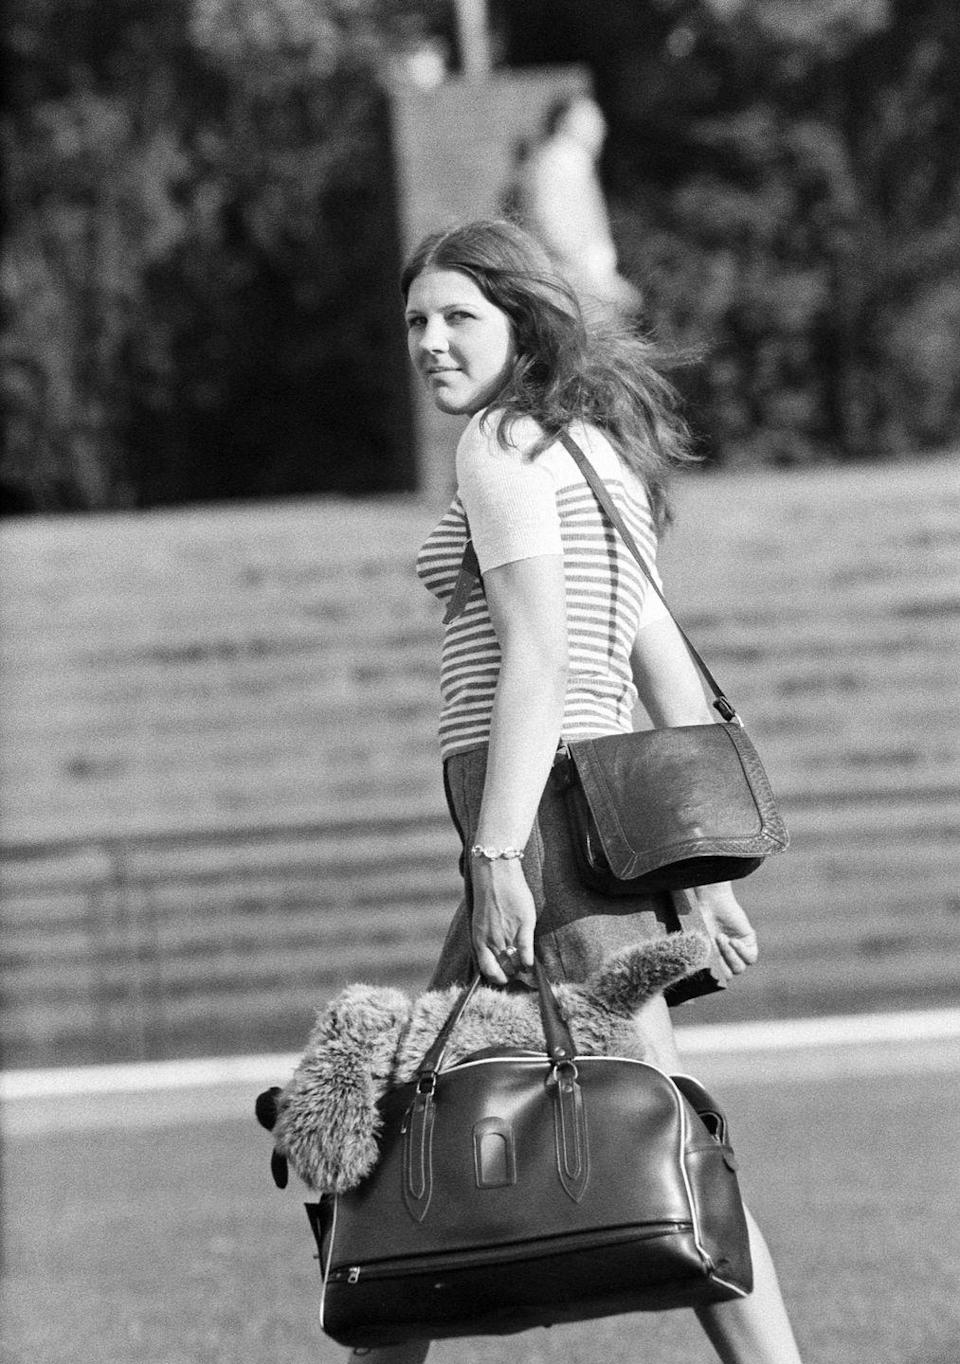 <p>A year later, larger bags were still in style, this time in the form of weekenders. They were the ultimate accessory if you wanted to be stylish while traveling—after all, who doesn't want to look like a jet-setter? </p>